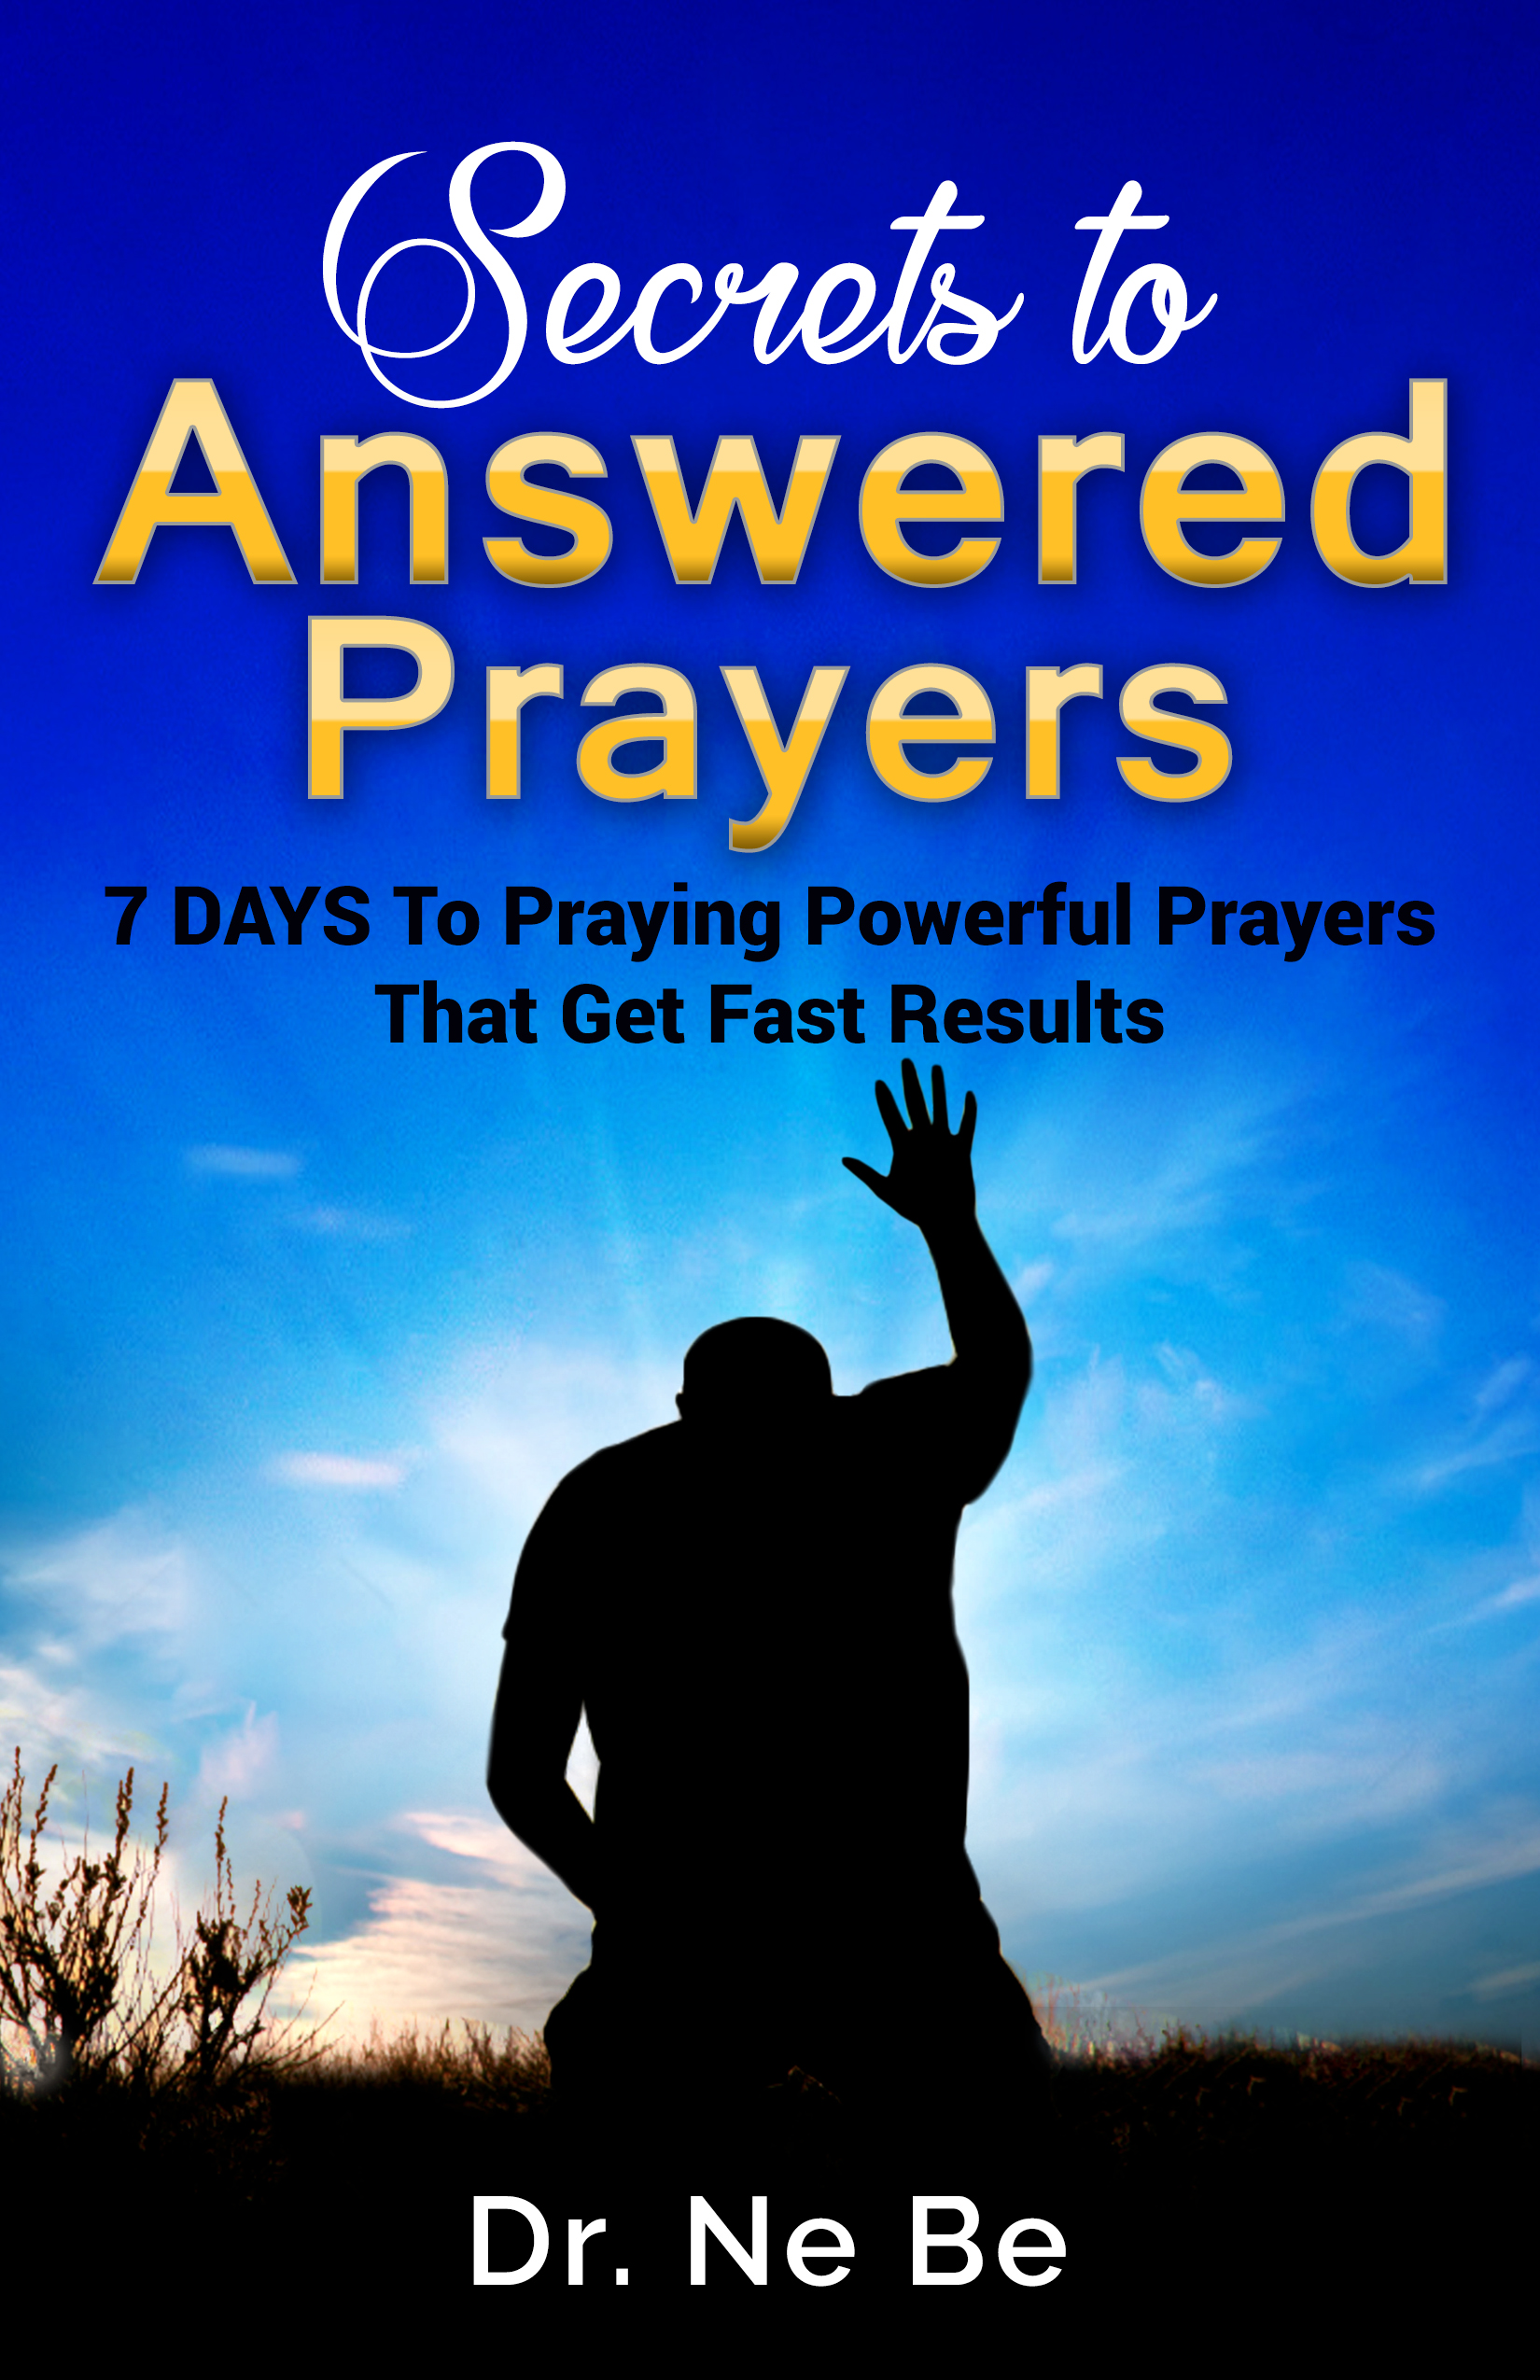 how to force god to answer your prayers -ebook, free ebook, free success ebook, ebook download, success, belief, power of belief, magic of believing,    mental power, power of mind, faith, desire, visualization, subconscious mind, prosperity,   abundance, prosperity, wealth, obtaining your desires, thought power, expectation, spiritual ebook, free pdf,   success manual, law of attraction, infinite, infinite intelligence, new thought, idealization, self improvement,   personal development, self help, free self improvement ebook, PDF ebook download, creating riches, creating wealth,   financial success, creating success, how to attract success,